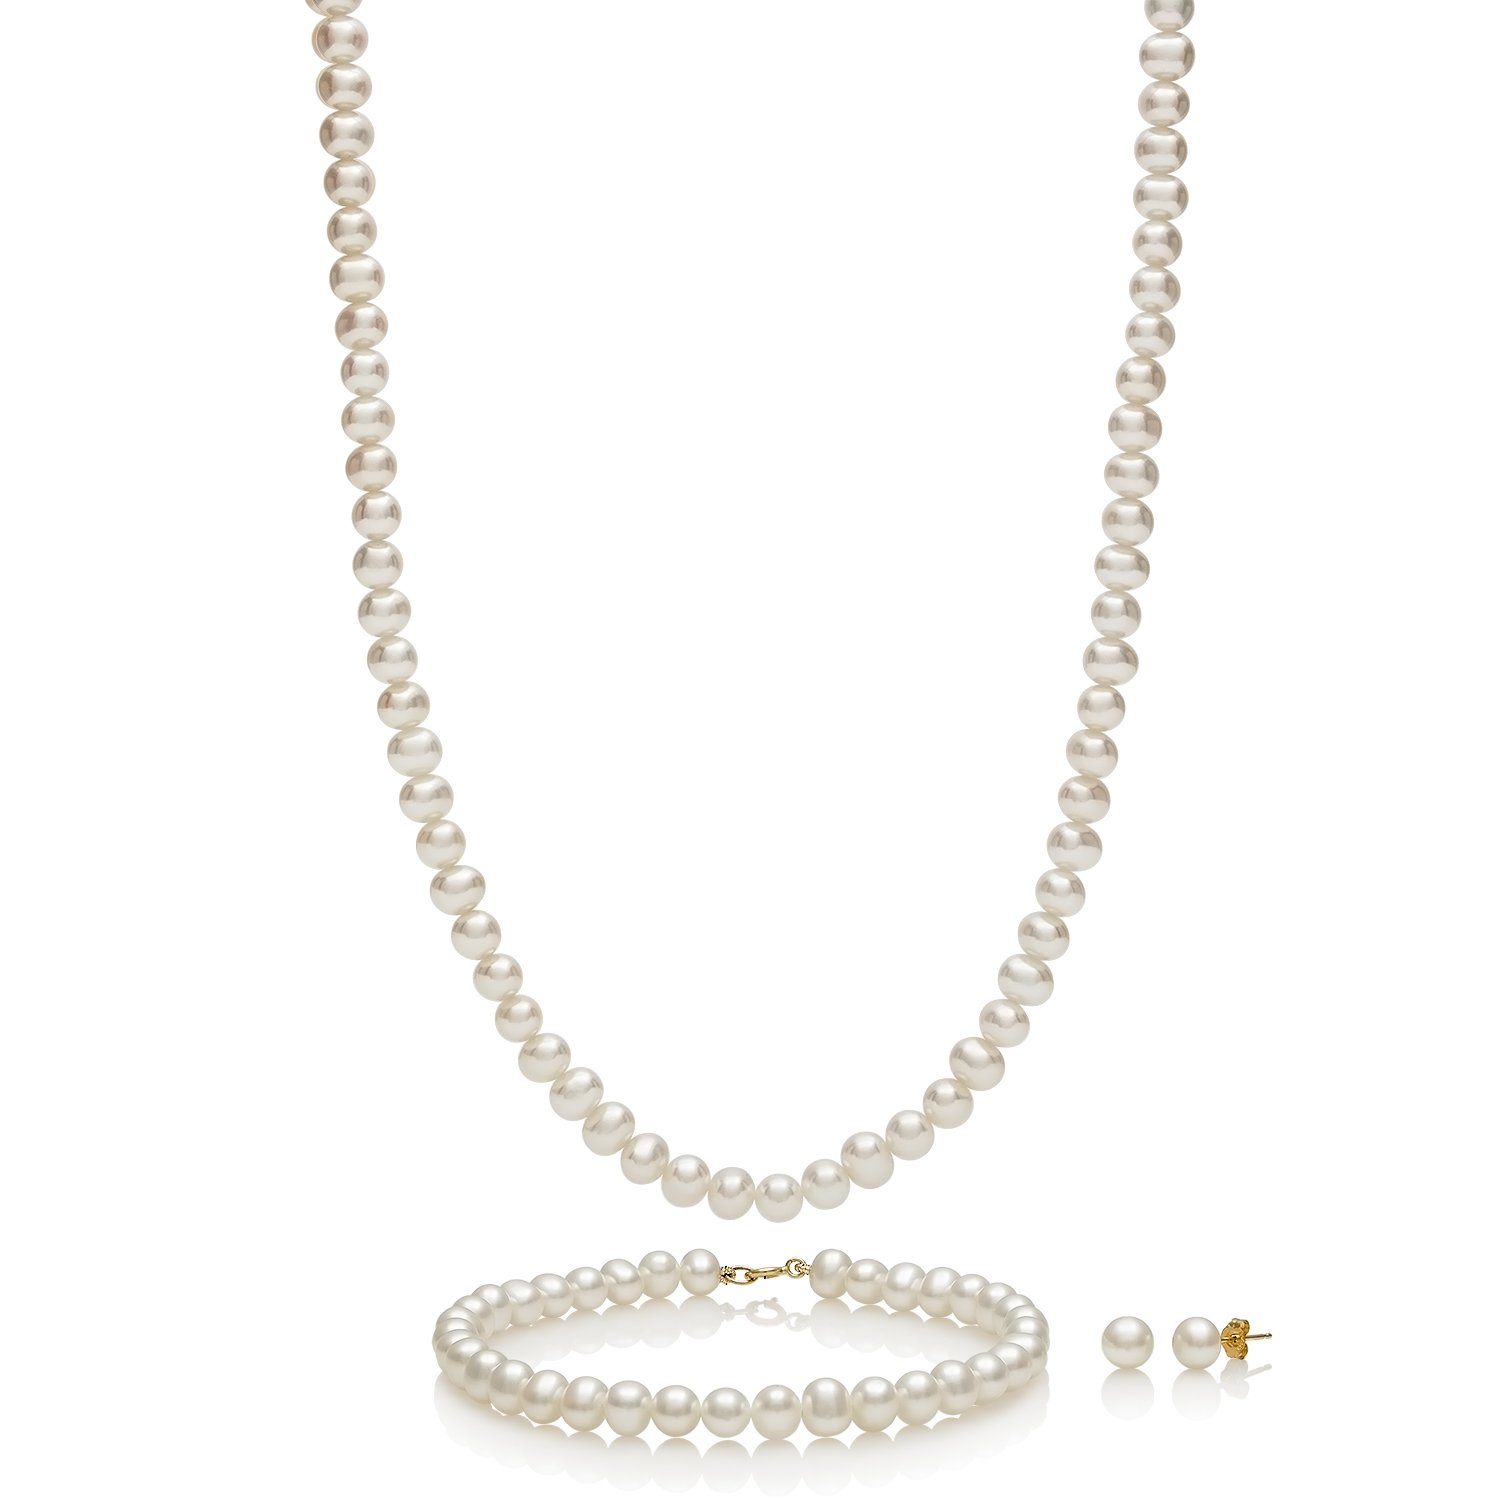 14k Yellow Gold Cultured Freshwater Pearl Necklace Bracelet Stud Earring Jewelry Gift Set,18''